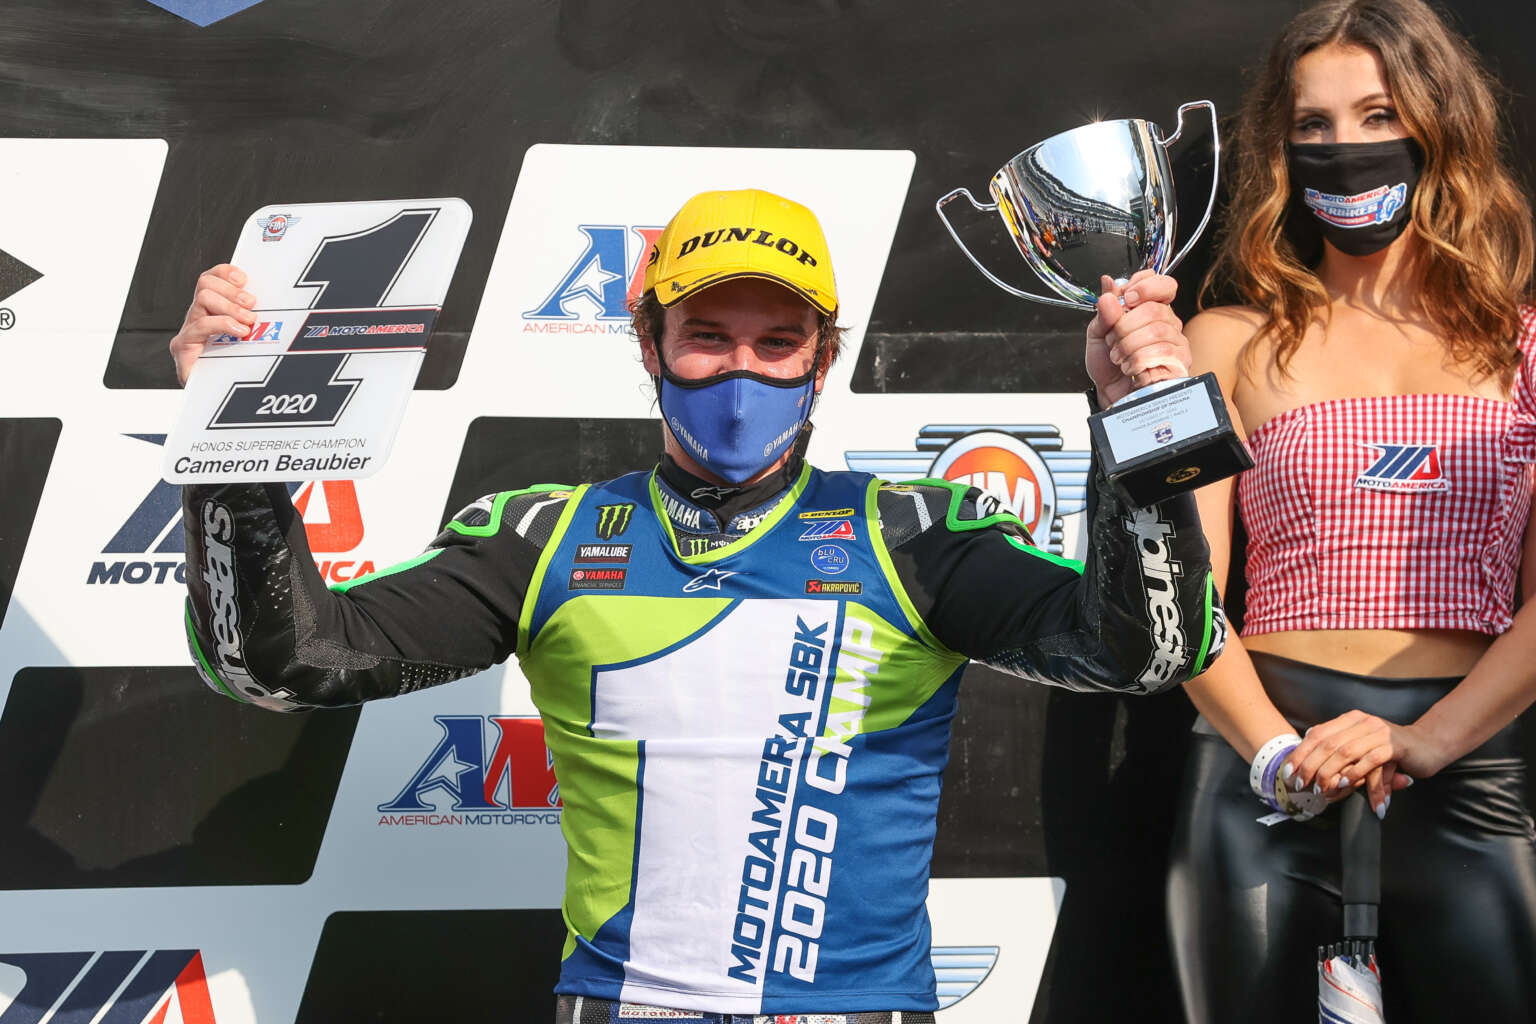 CAMERON BEAUBIER WINS FIFTH AMA SUPERBIKE CHAMPIONSHIP AT INDIANAPOLIS MOTOR SPEEDWAY